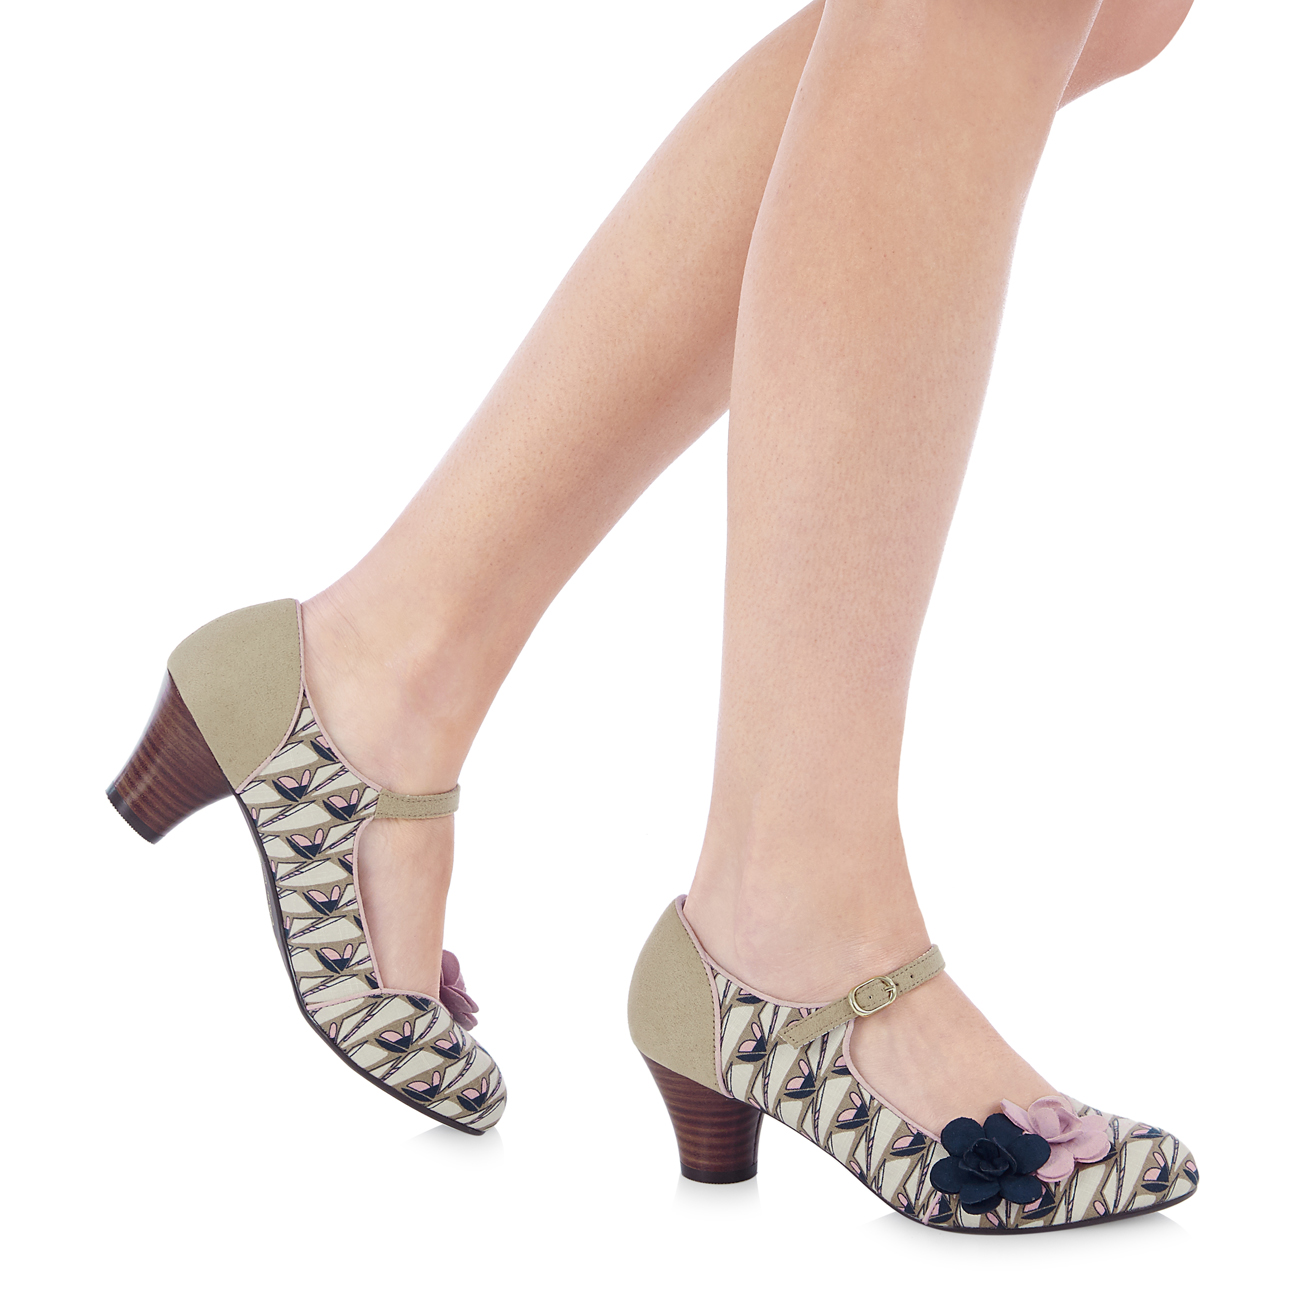 Ruby Shoo Mia Niedrig Heel Mary Jane & 36-42 Matching Belfast Bag 3-9 36-42 & Retro Print 13eeee